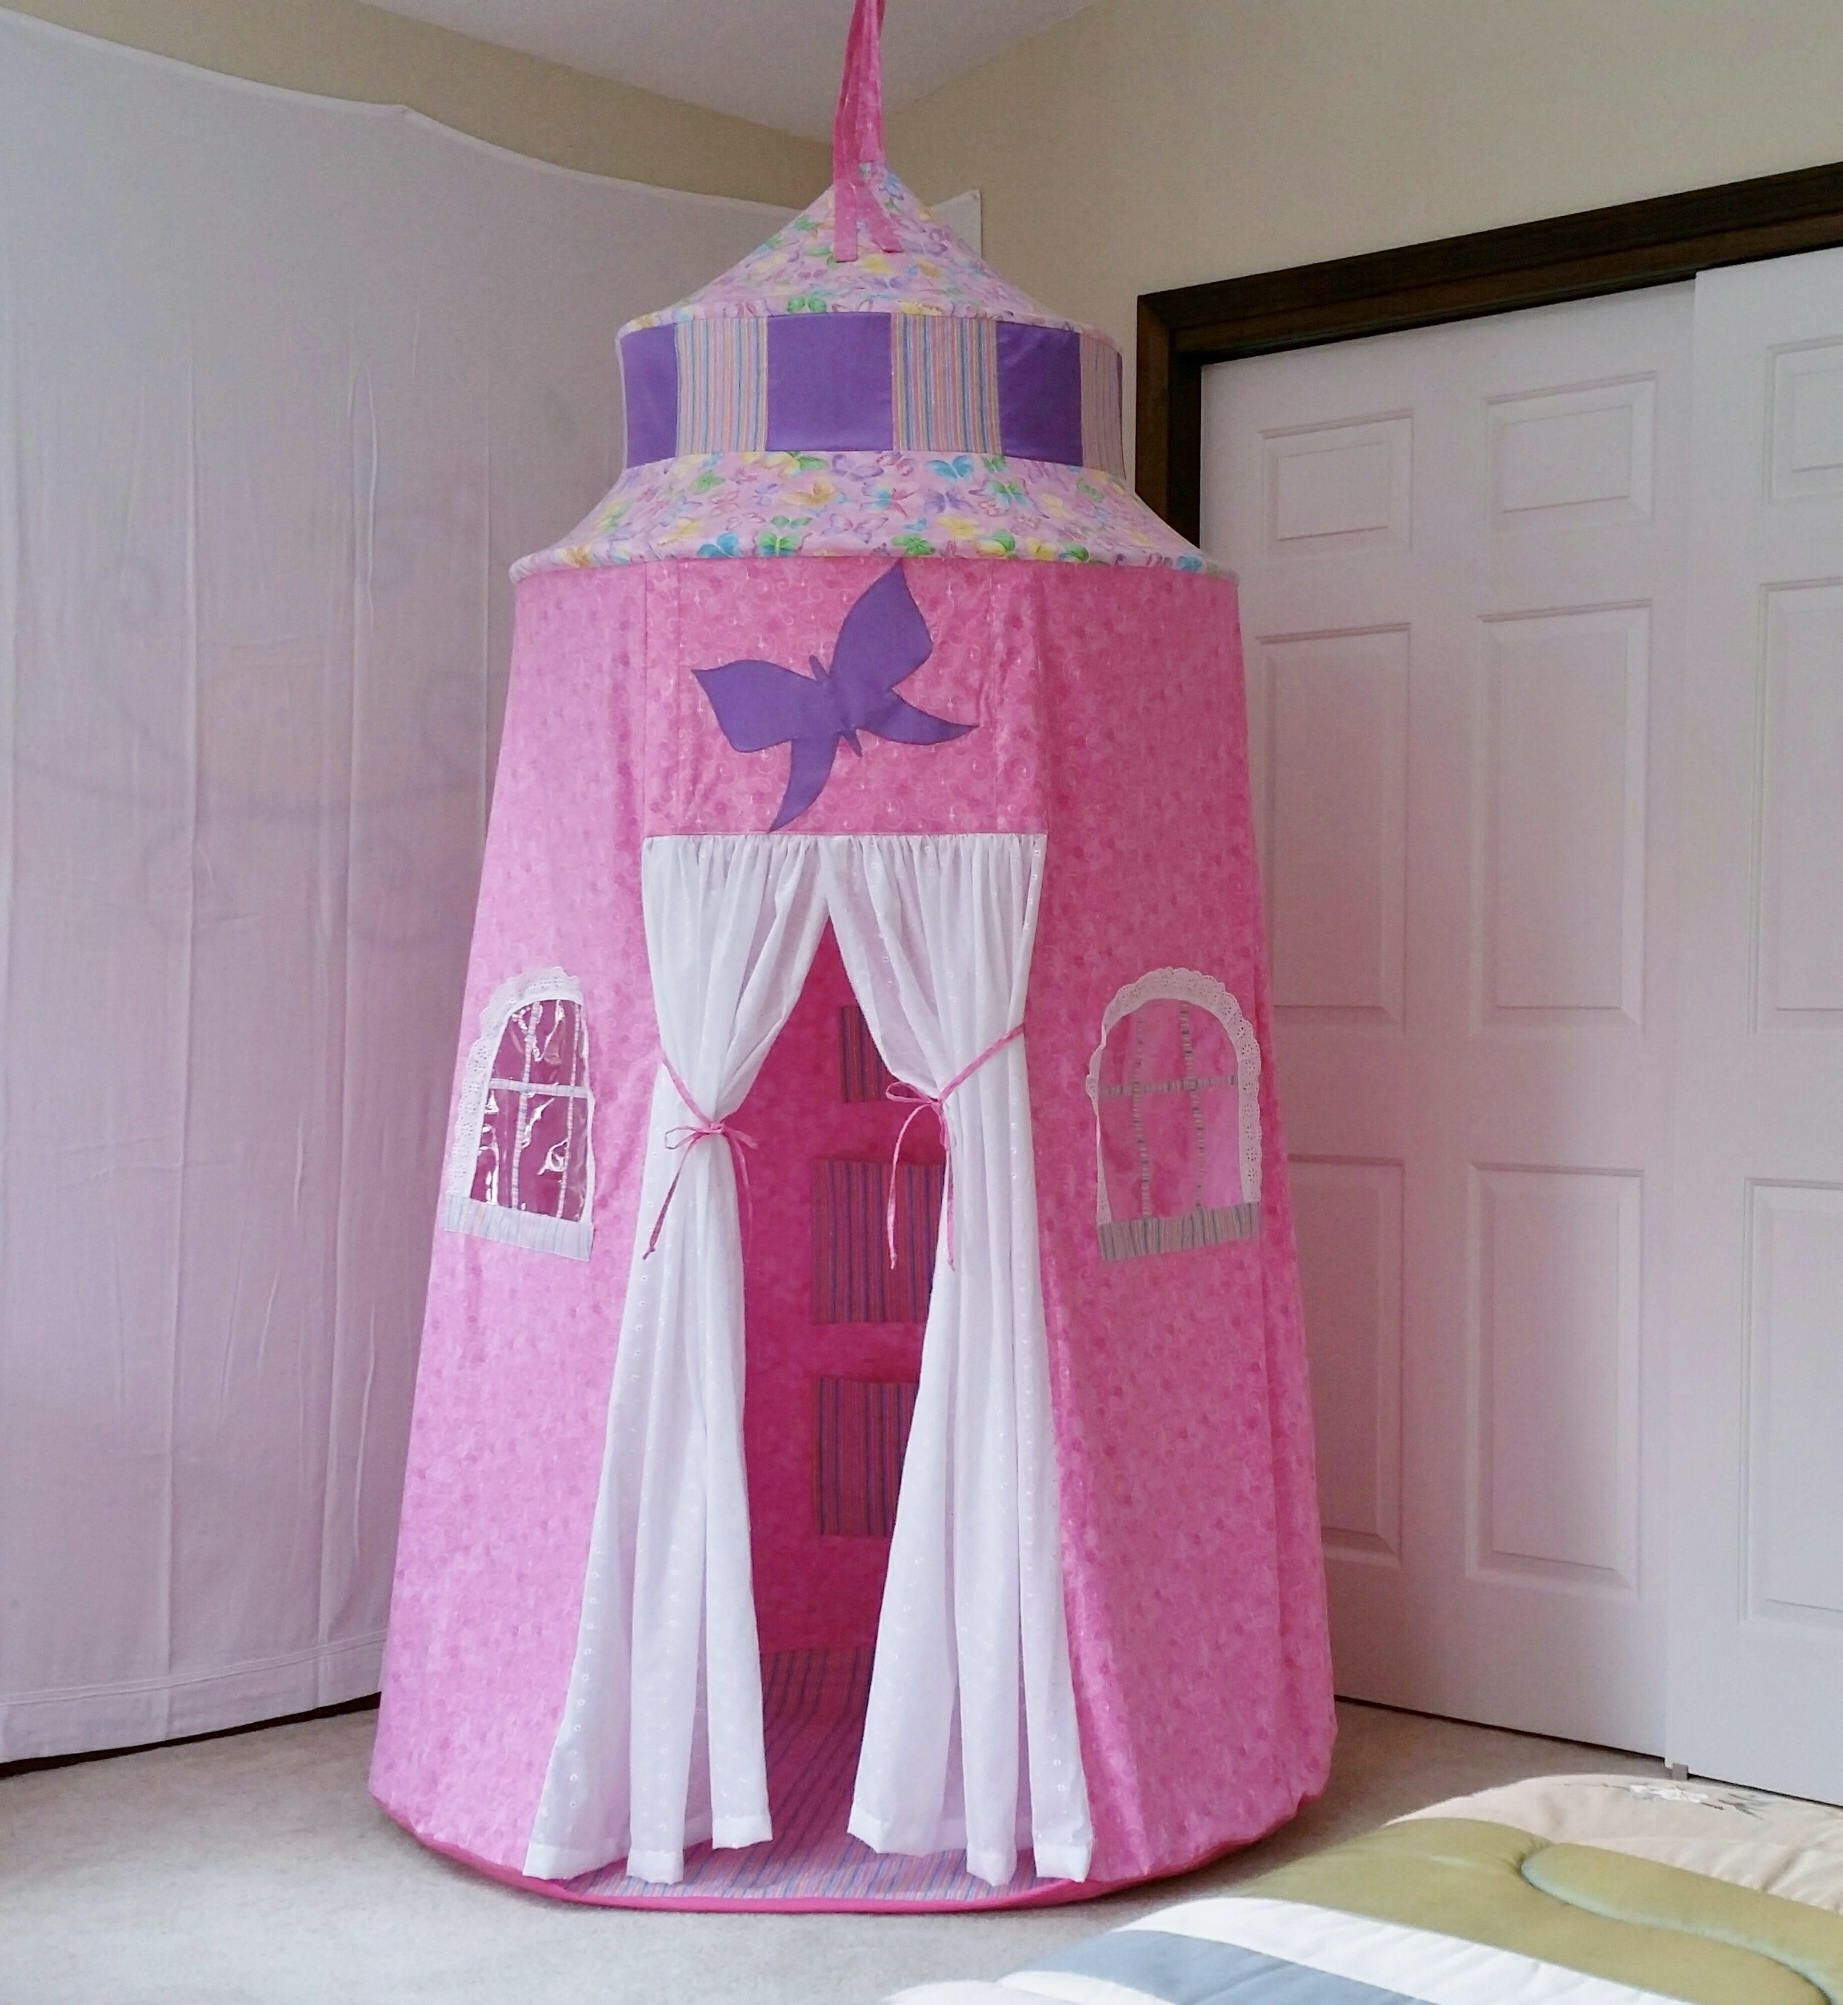 Princess Play Tent Pink Castle Tent Fabric Playhouse for Kids Pink princess castle & Princess Play Tent Pink Castle Tent Fabric Playhouse for Kids ...